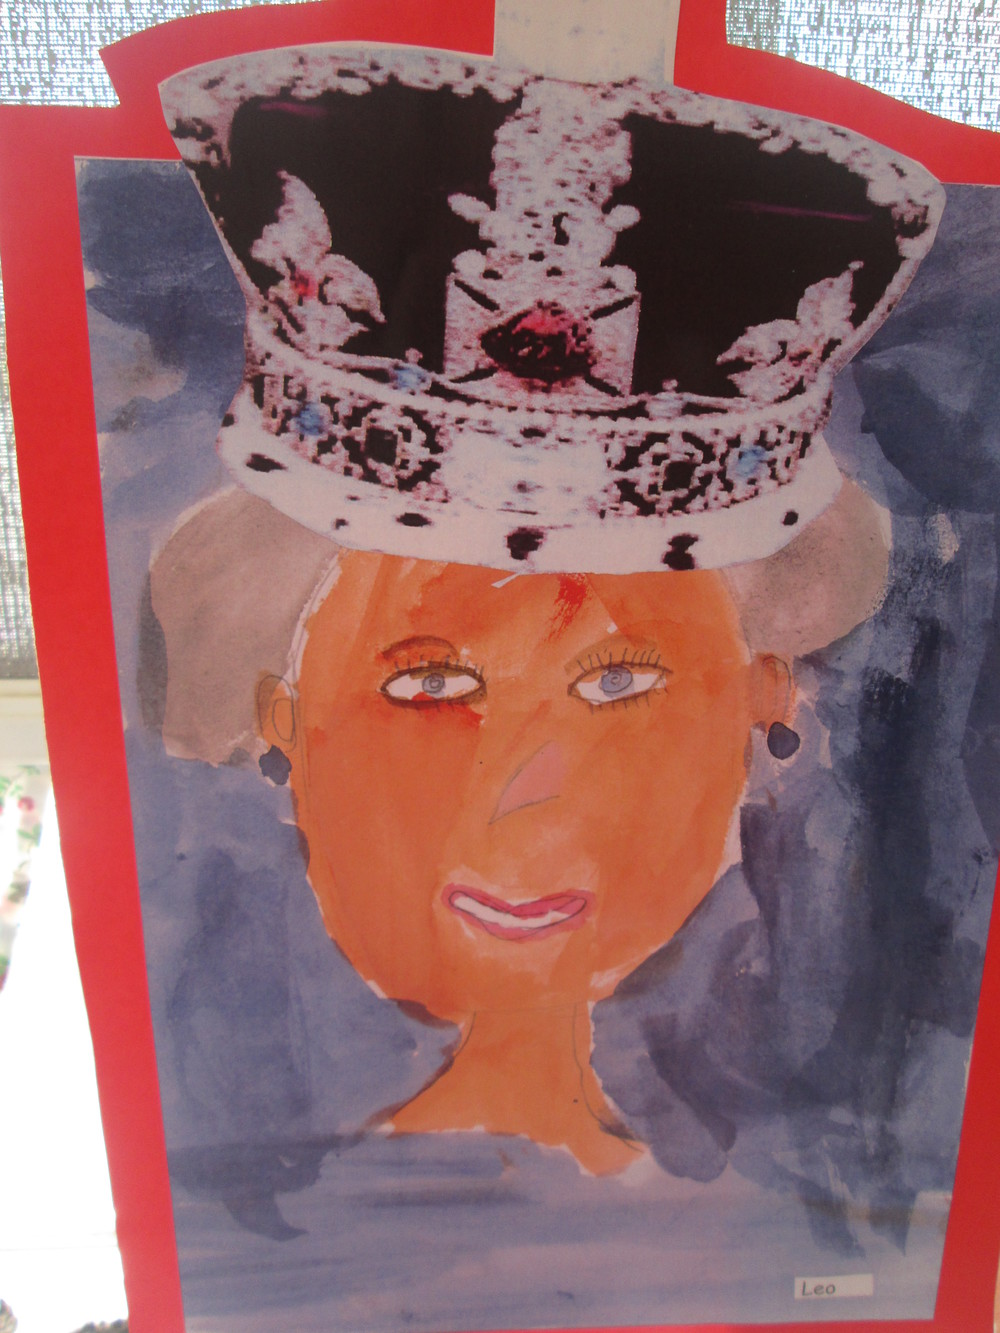 Happy Birthday Your Majesty.  We have painted a portrait of you wearing the Imperial State crown